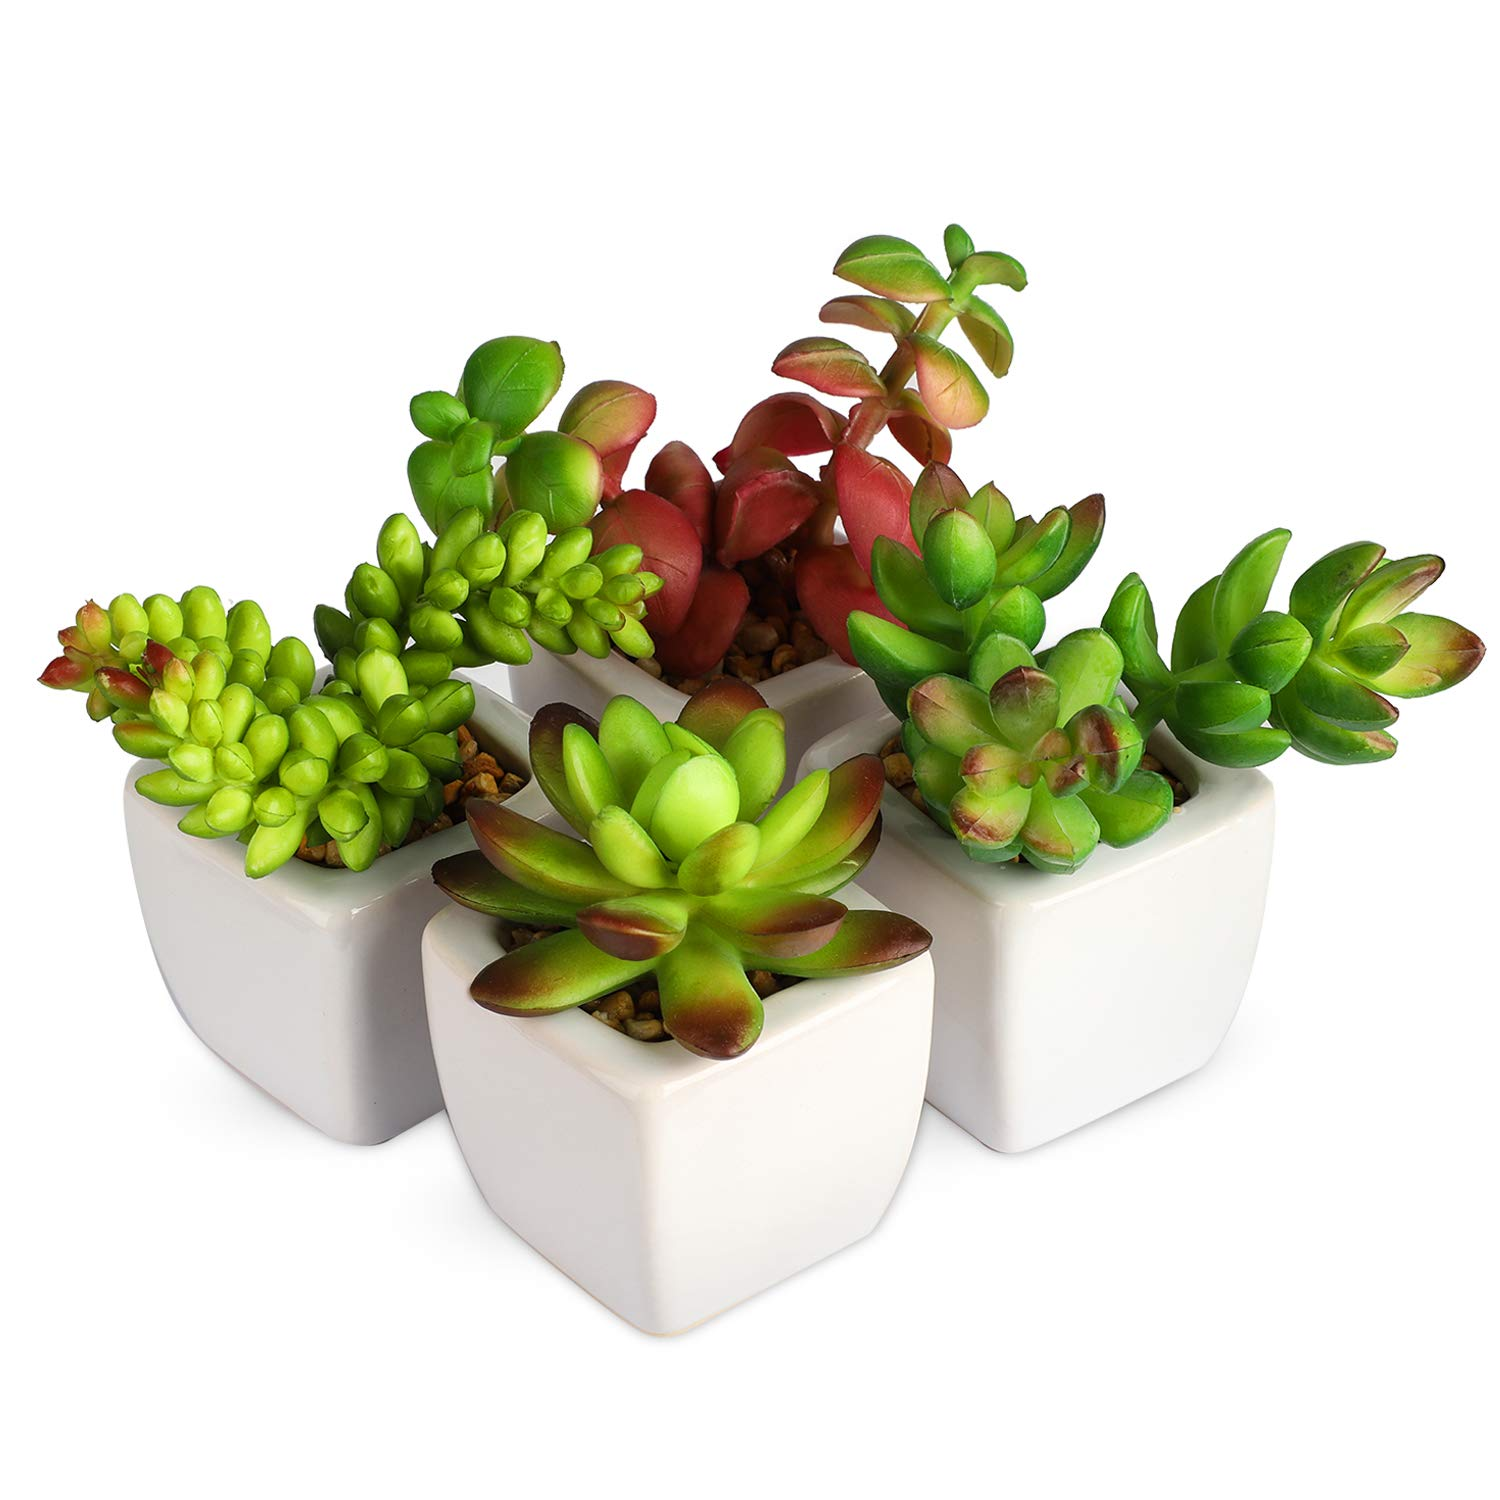 Myartte Home Decor-Set of 4 small Cube-Shaped Ceramic Pot with 4 different Artificial Succulent Plant for Home/Office Decoration